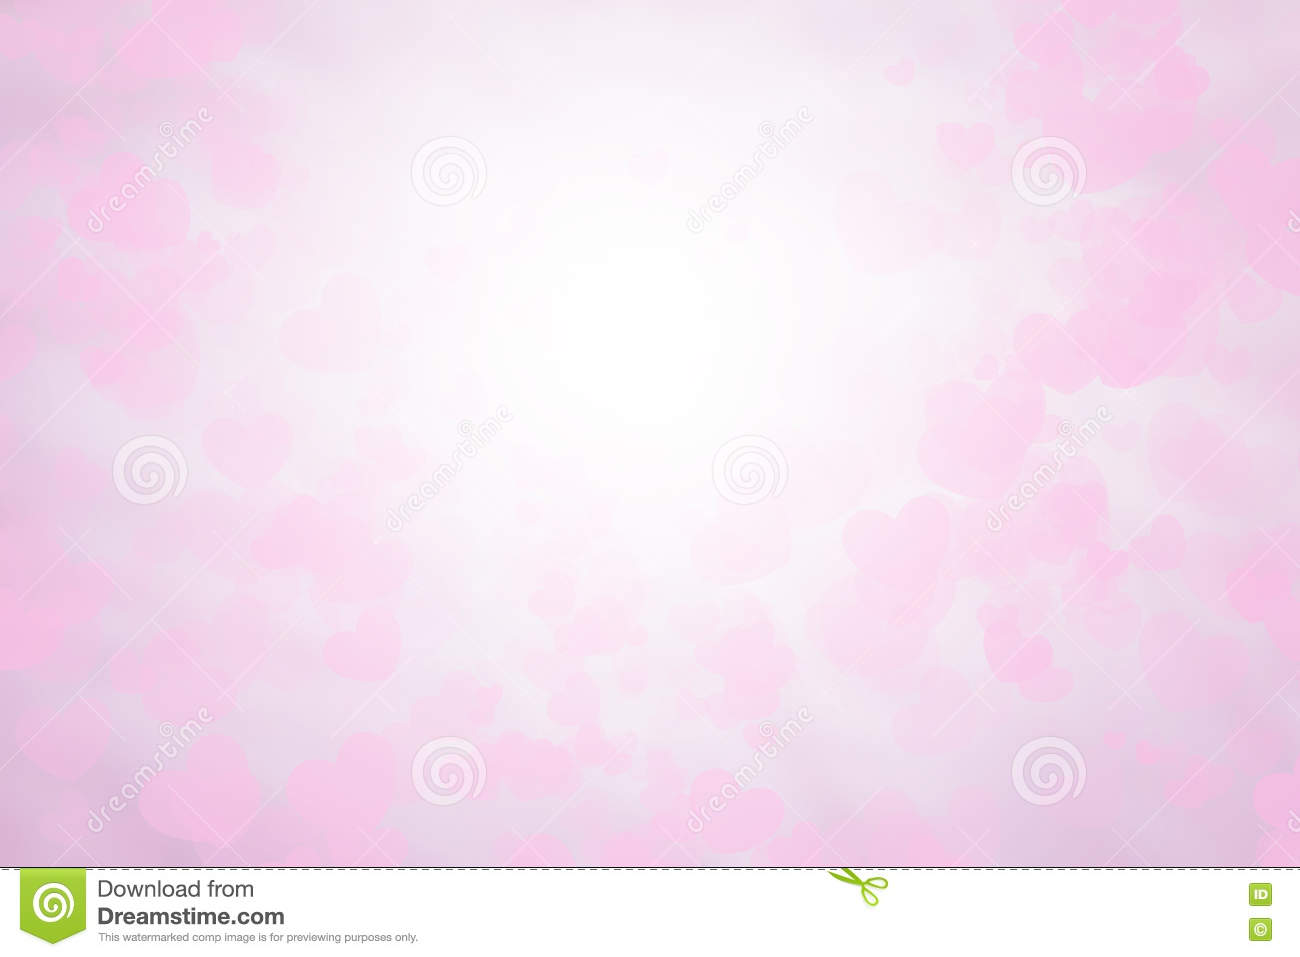 Blurred Background Valentine S Card Pink And White Wallpaper Sweet Colors And Pastel Shades Stock Illustration Illustration Of Celebration Border 71347167